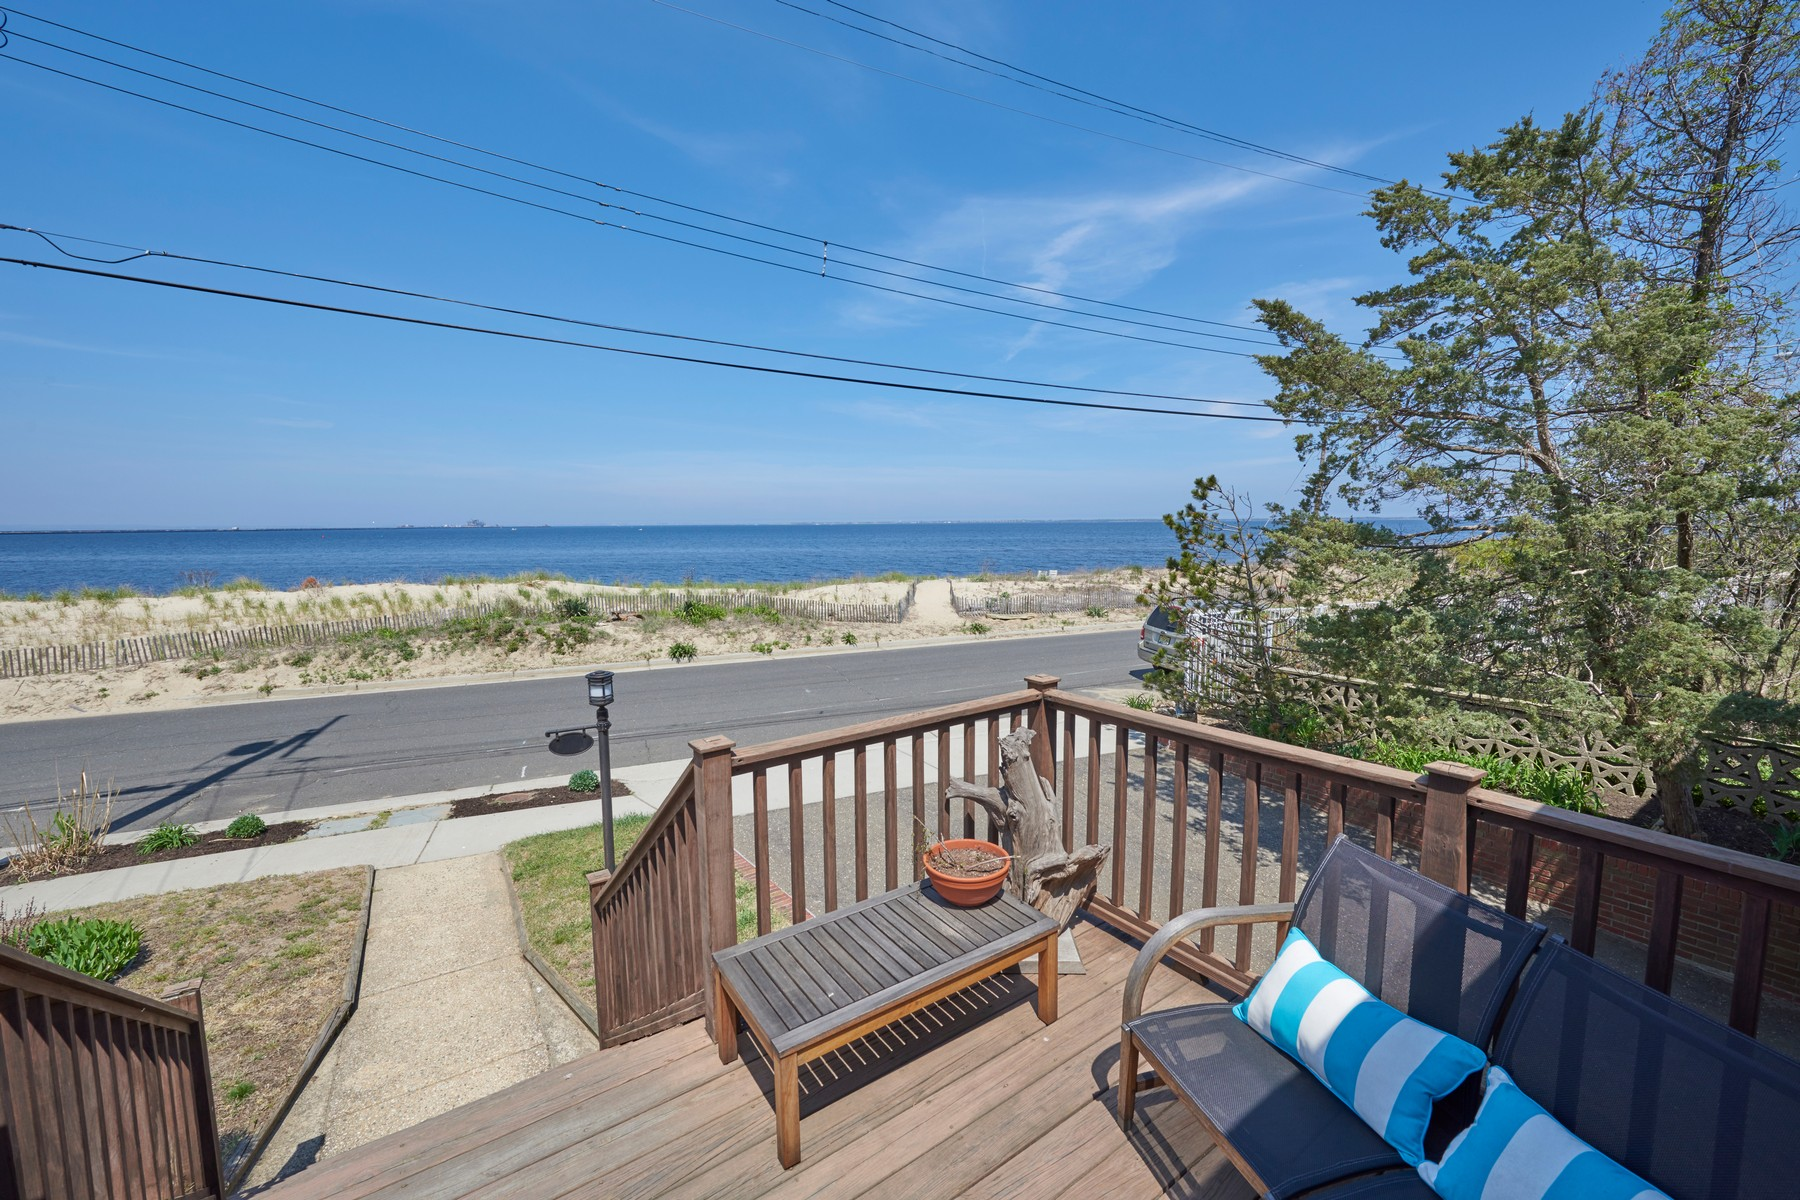 Single Family Home for Sale at Waking Up To The Sunrise 218 Beach Ave. Leonardo, New Jersey 07737 United States